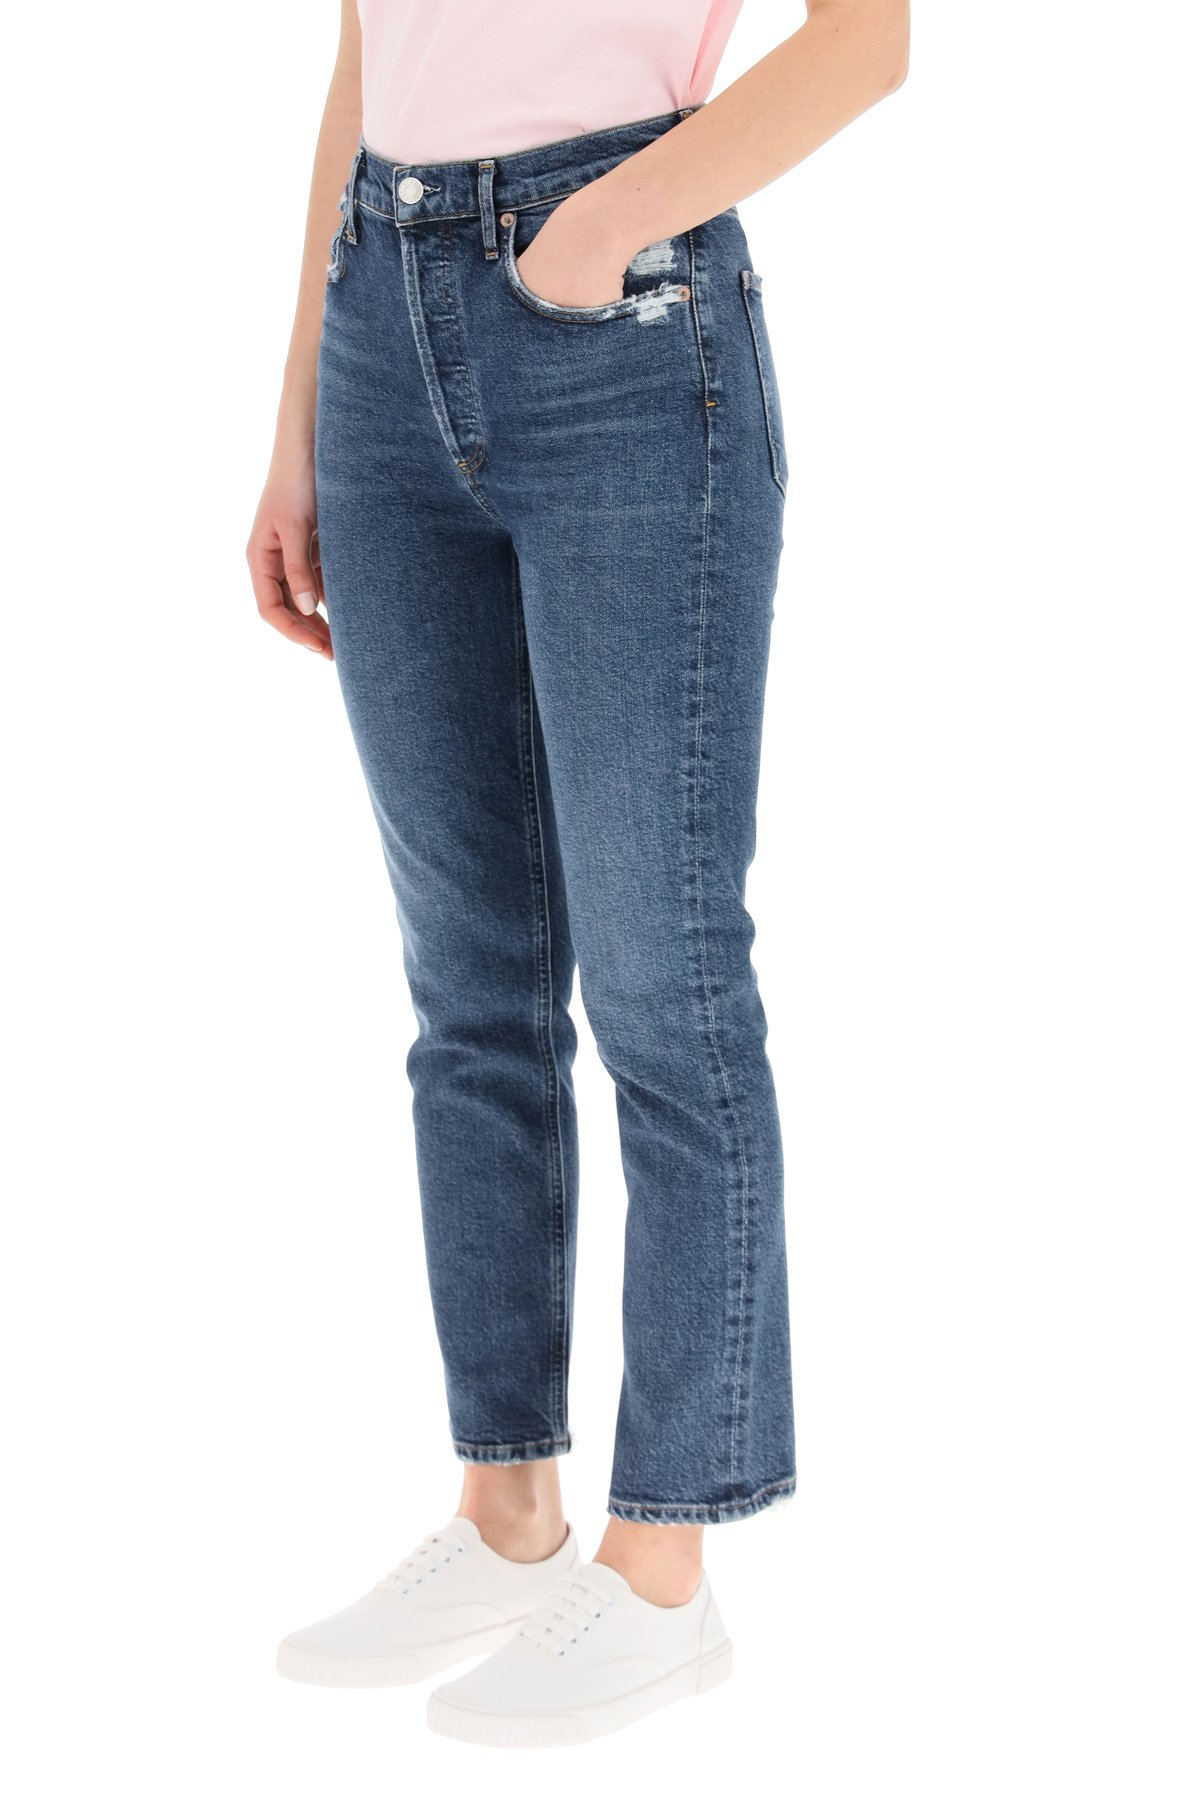 Agolde jeans riley high rise straight crop